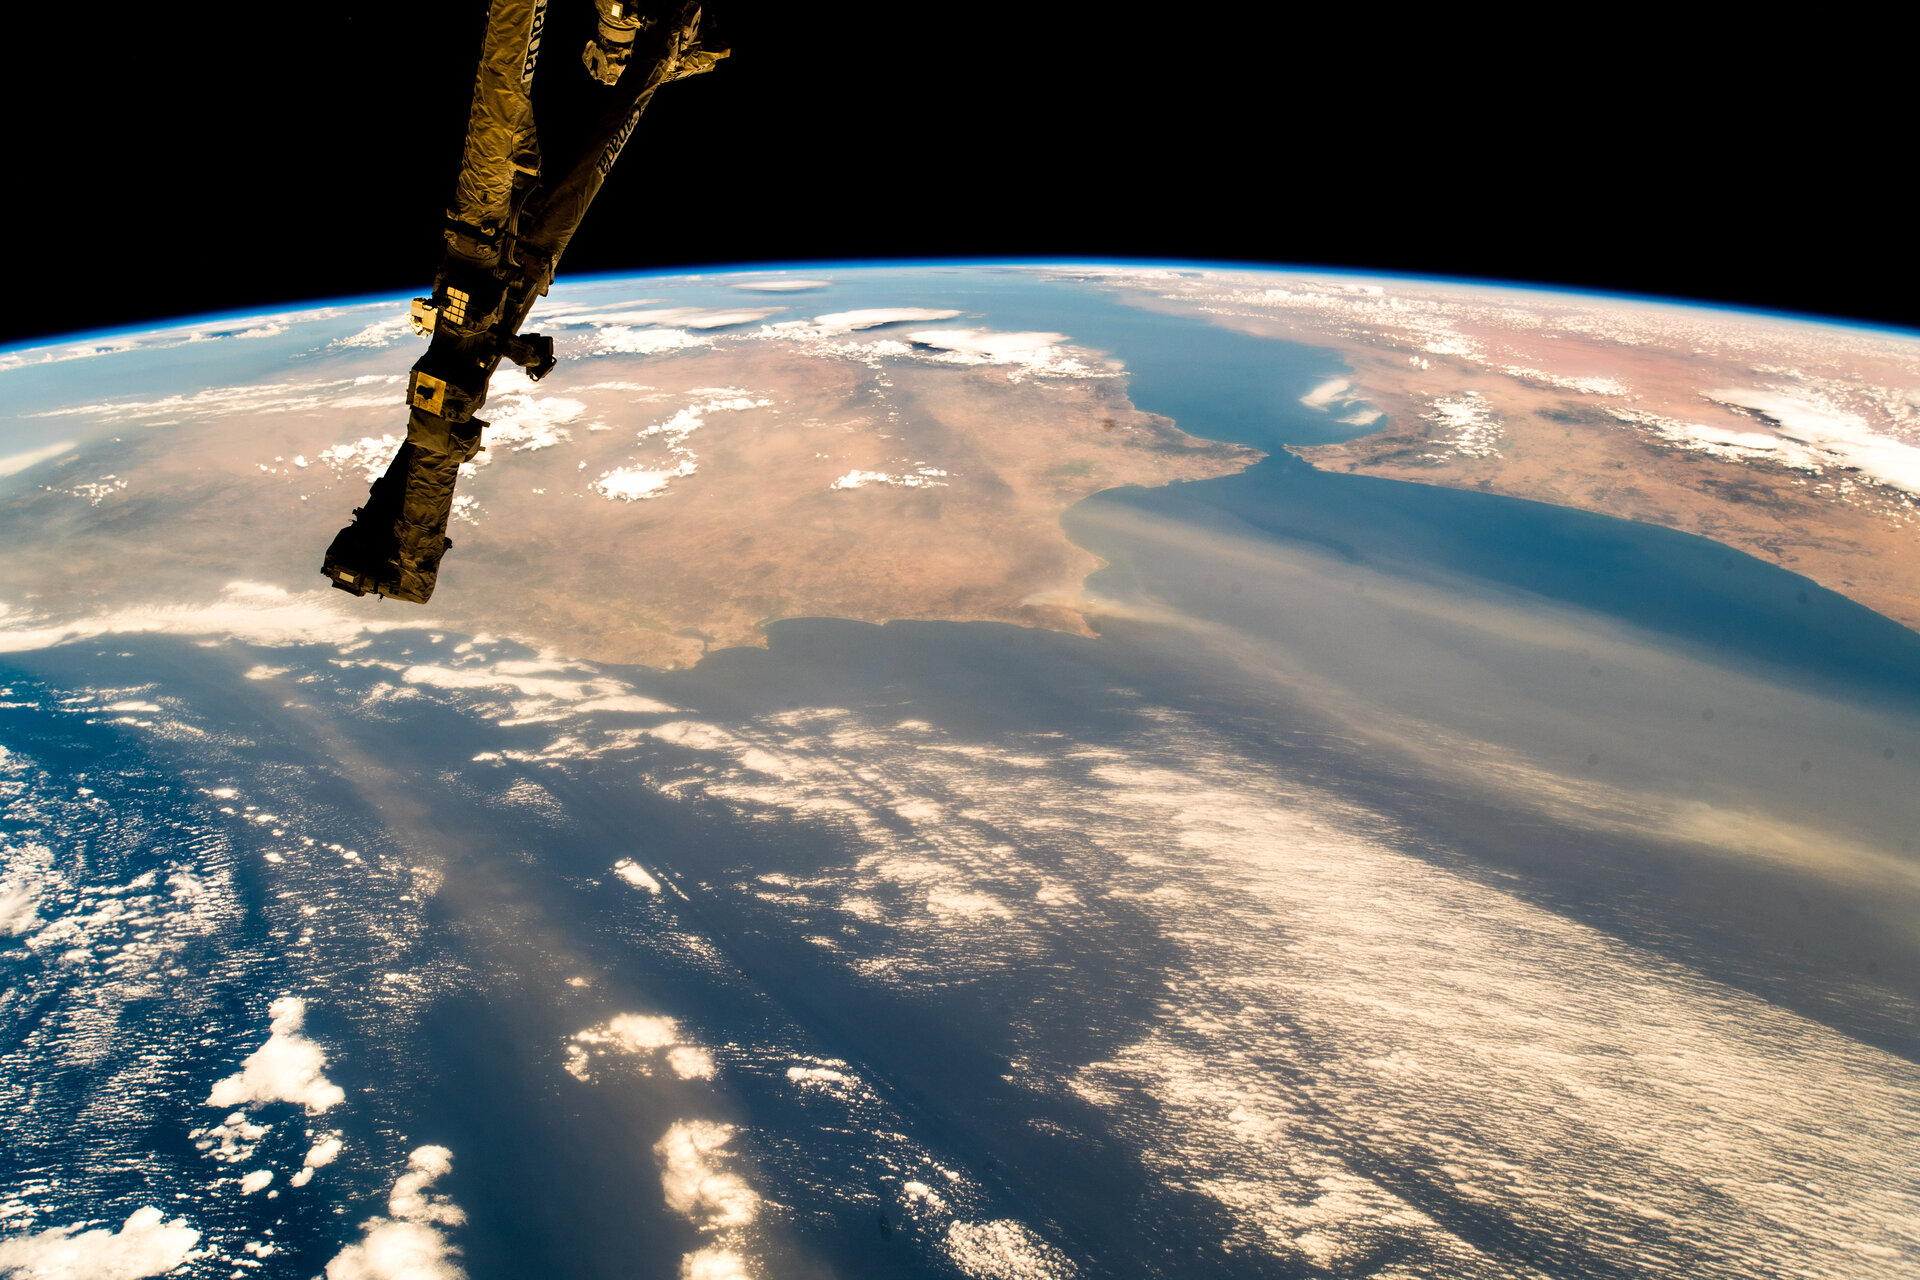 Ocean and soil – Iberian peninsular seen from space